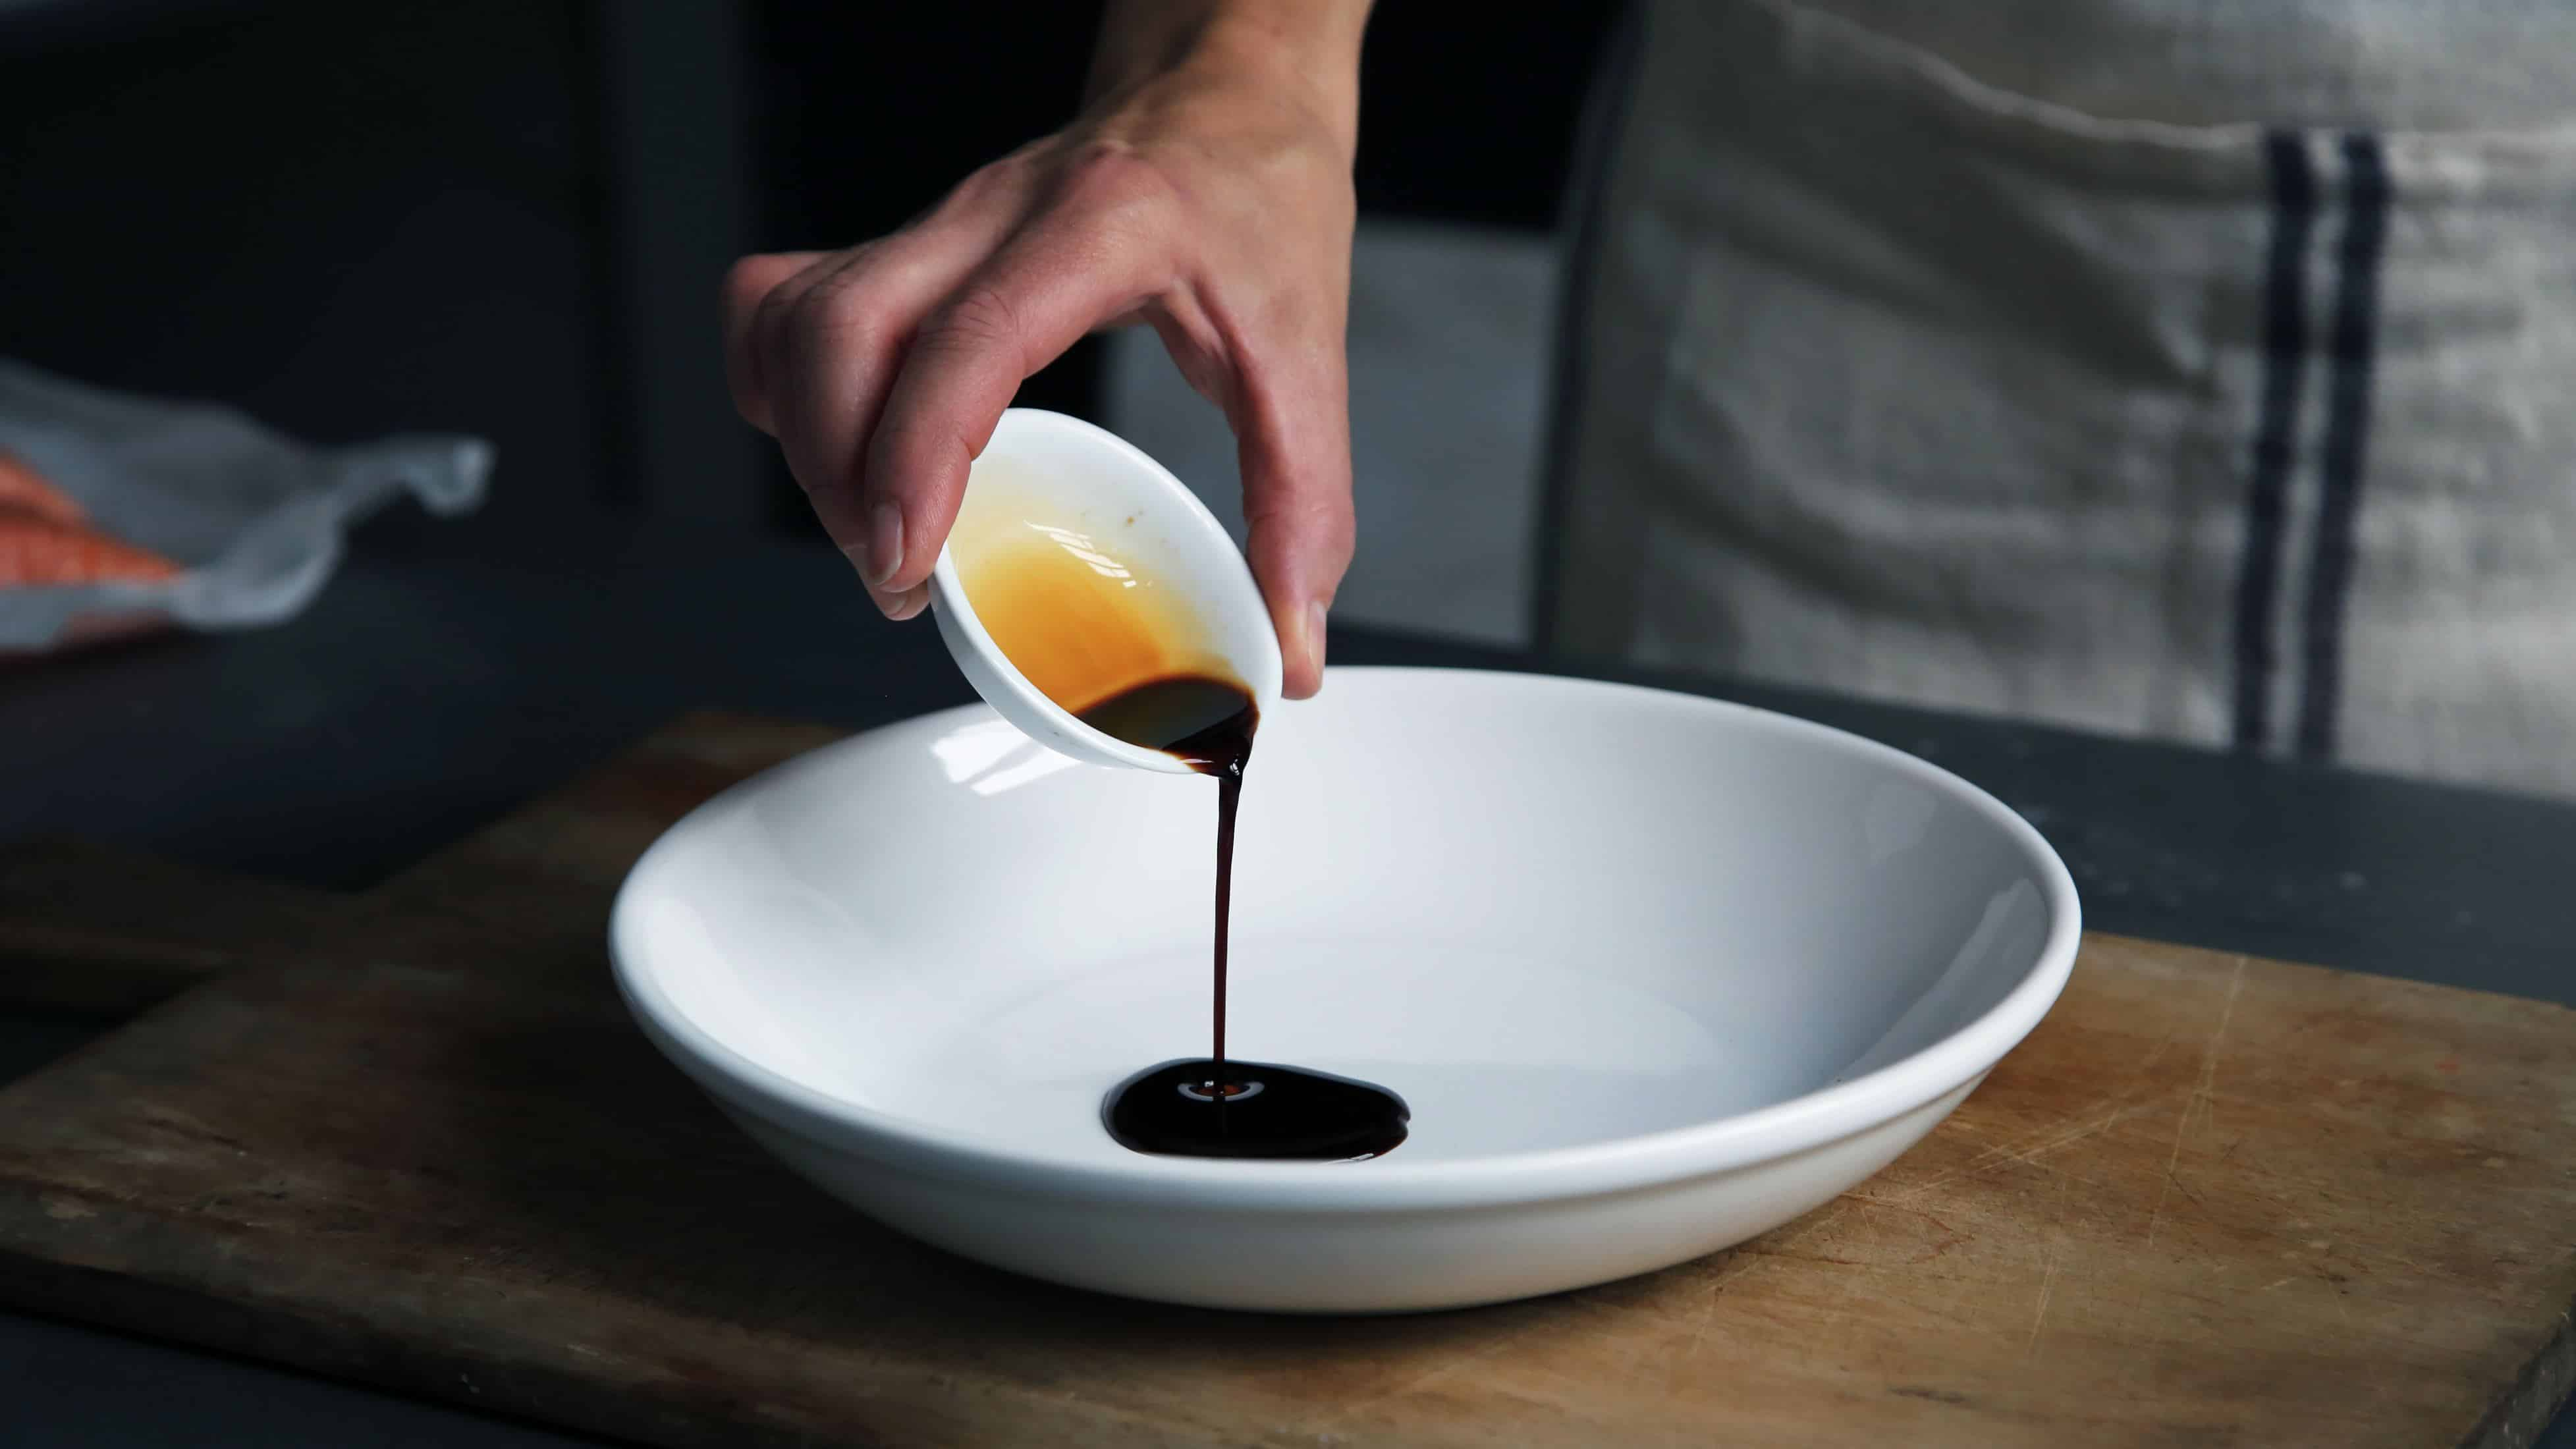 person dripping black liquid from small white ceramic bowl to big white ceramic bowl